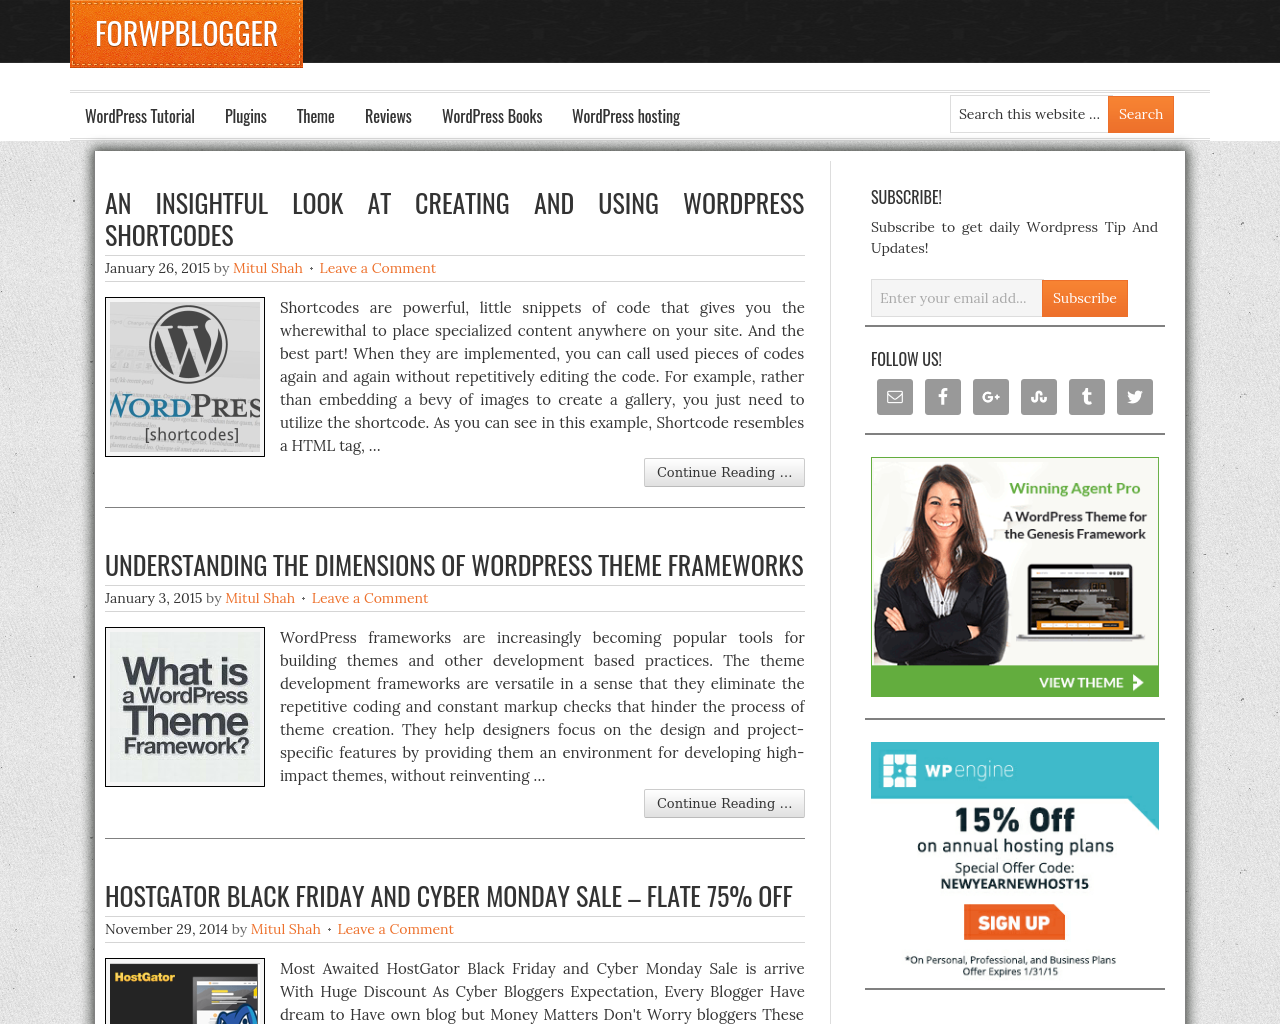 Forwpblogger-Advertising-Reviews-Pricing